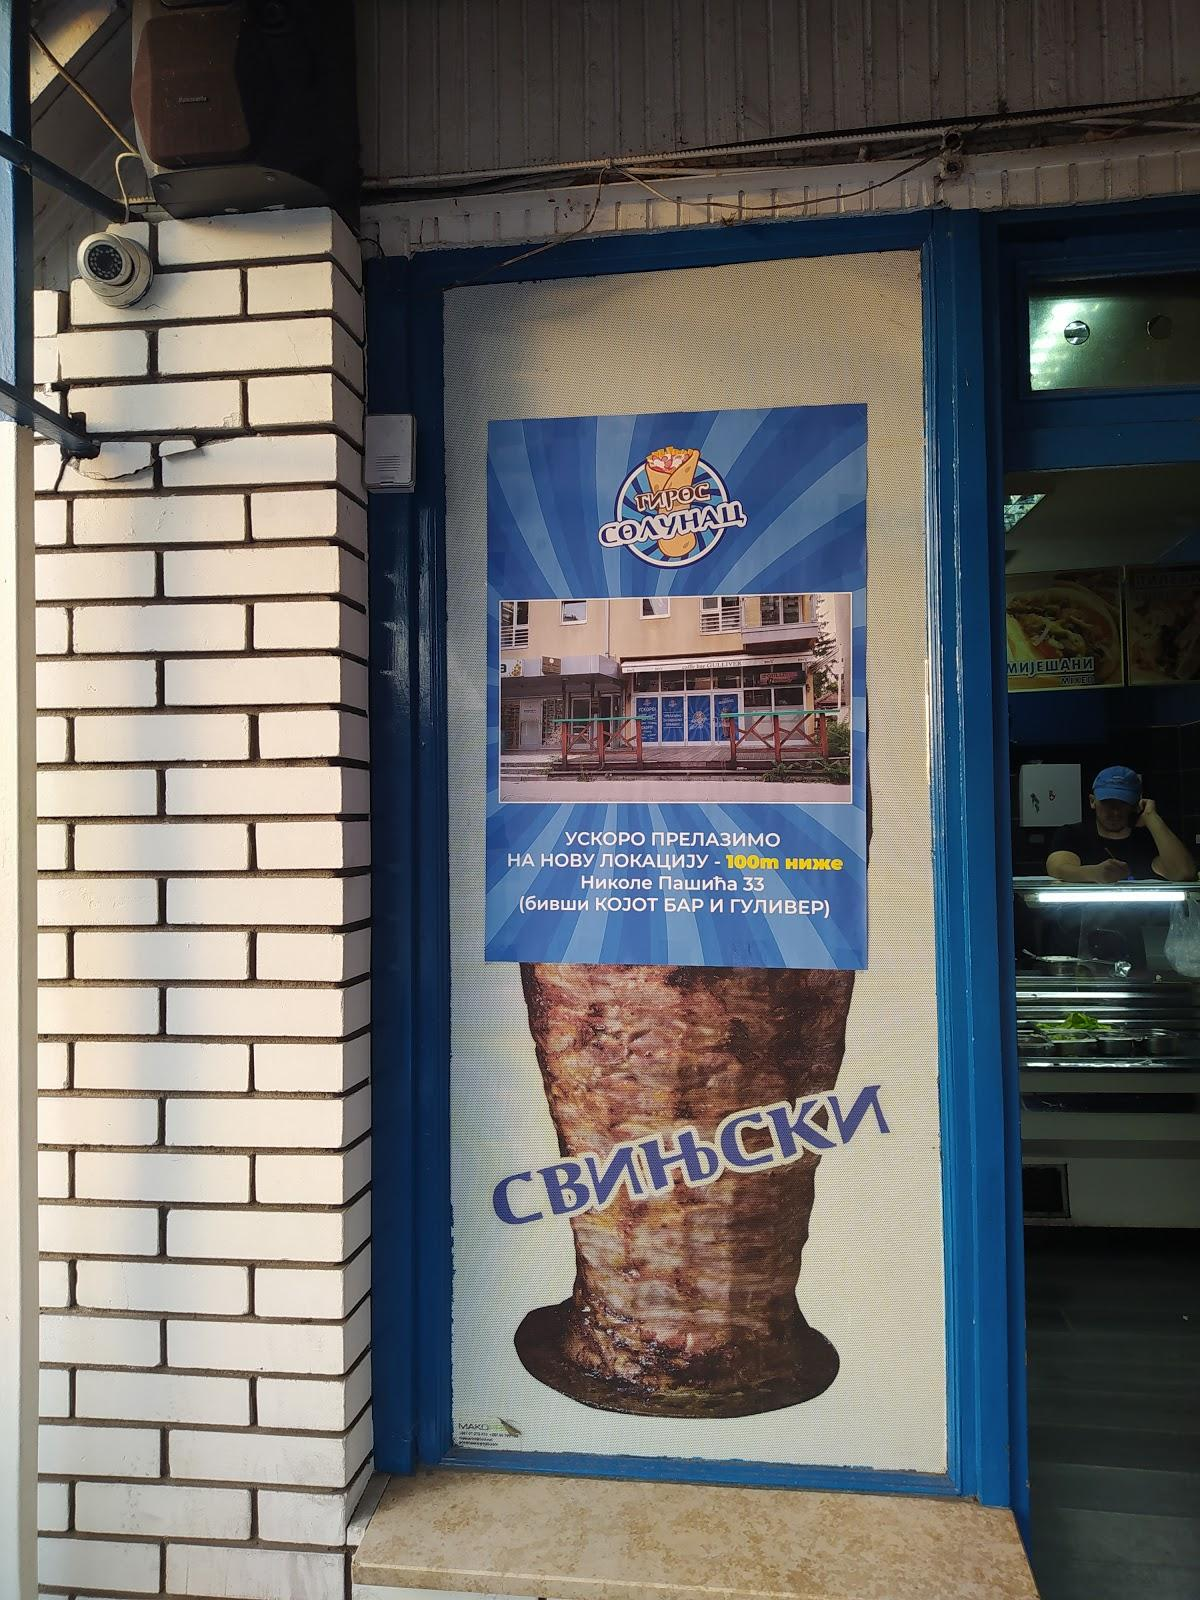 The advertisement shows information about Gyro Solunac